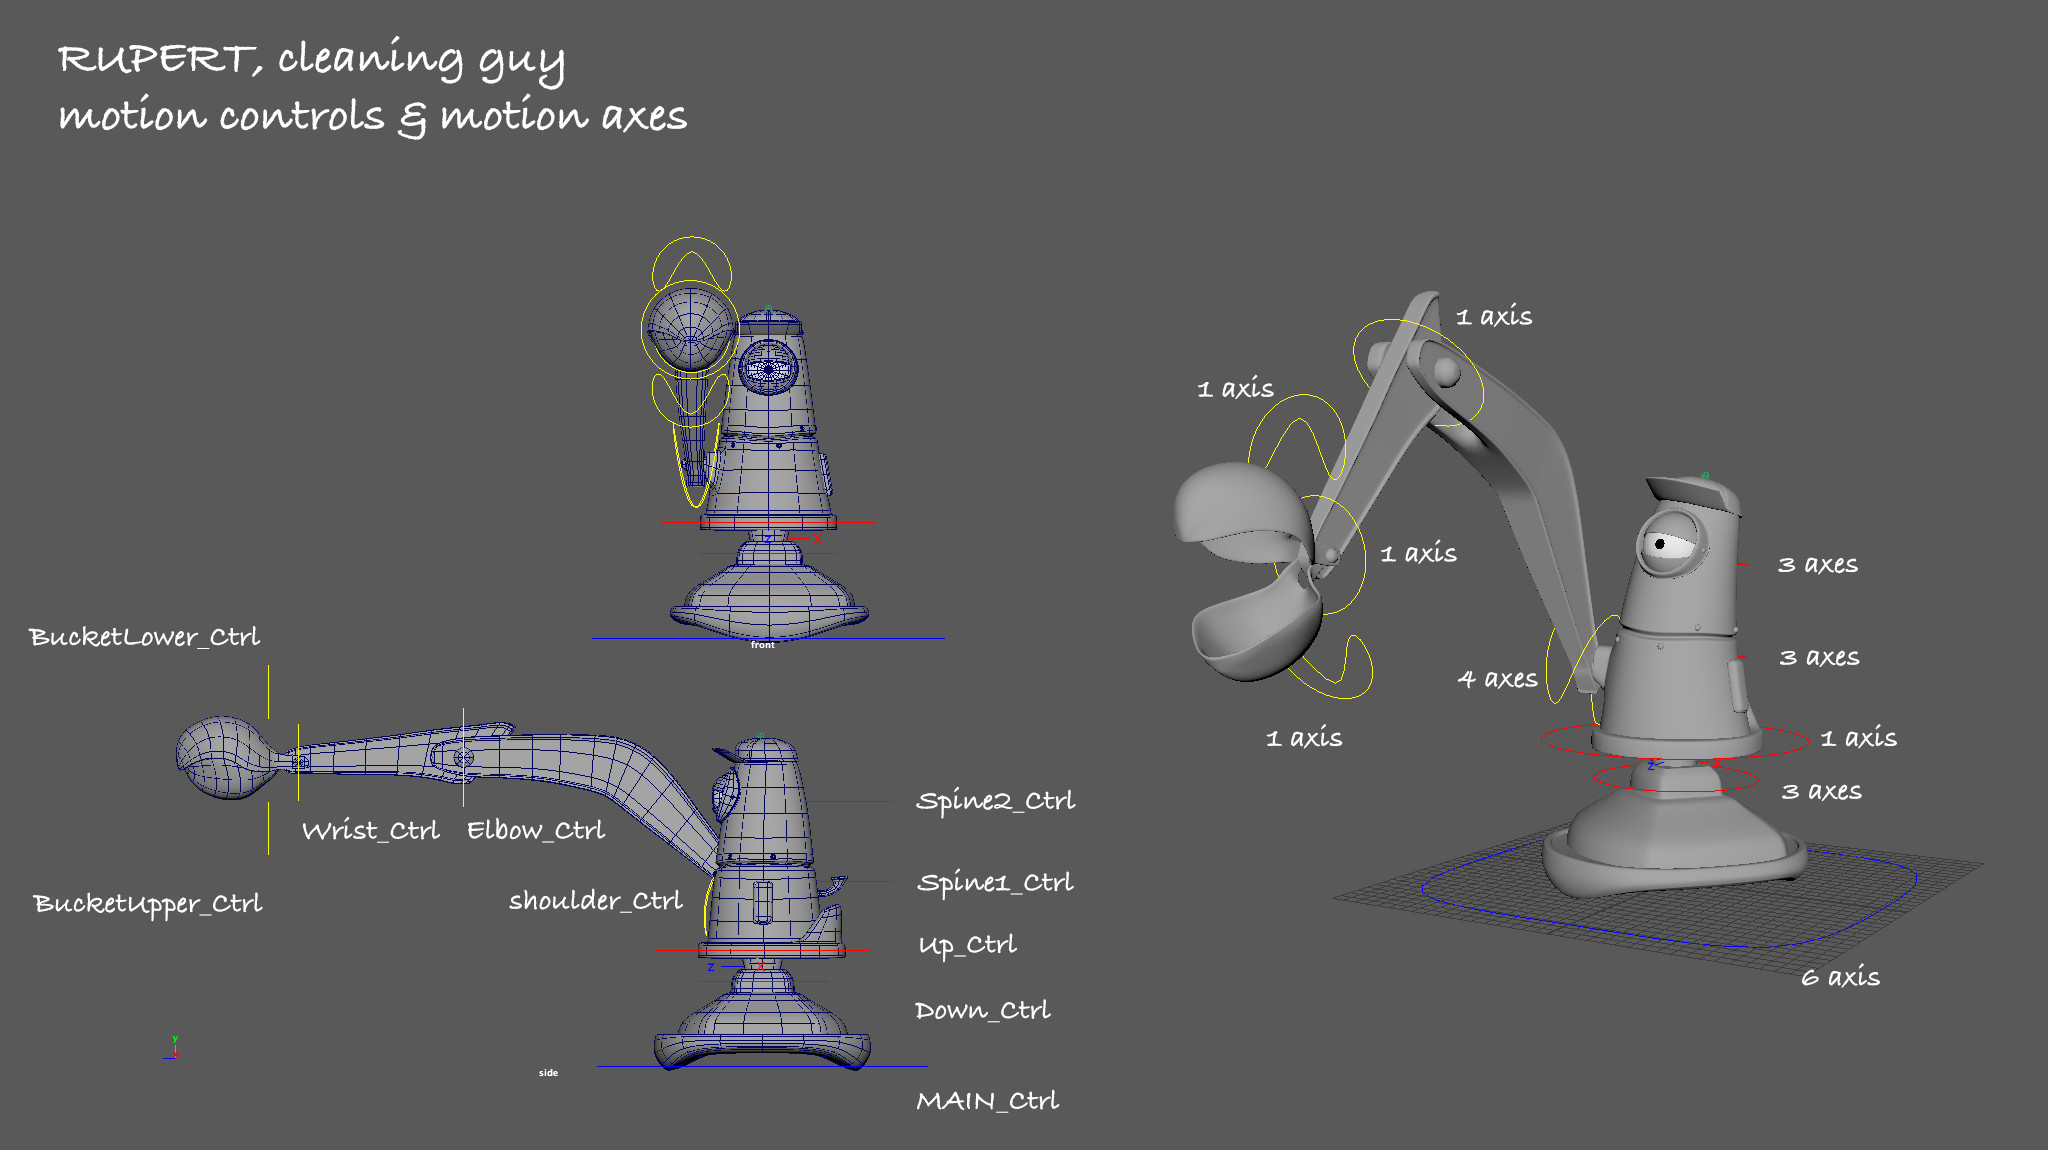 Rupert the Cleaner, 3d model and motion controls